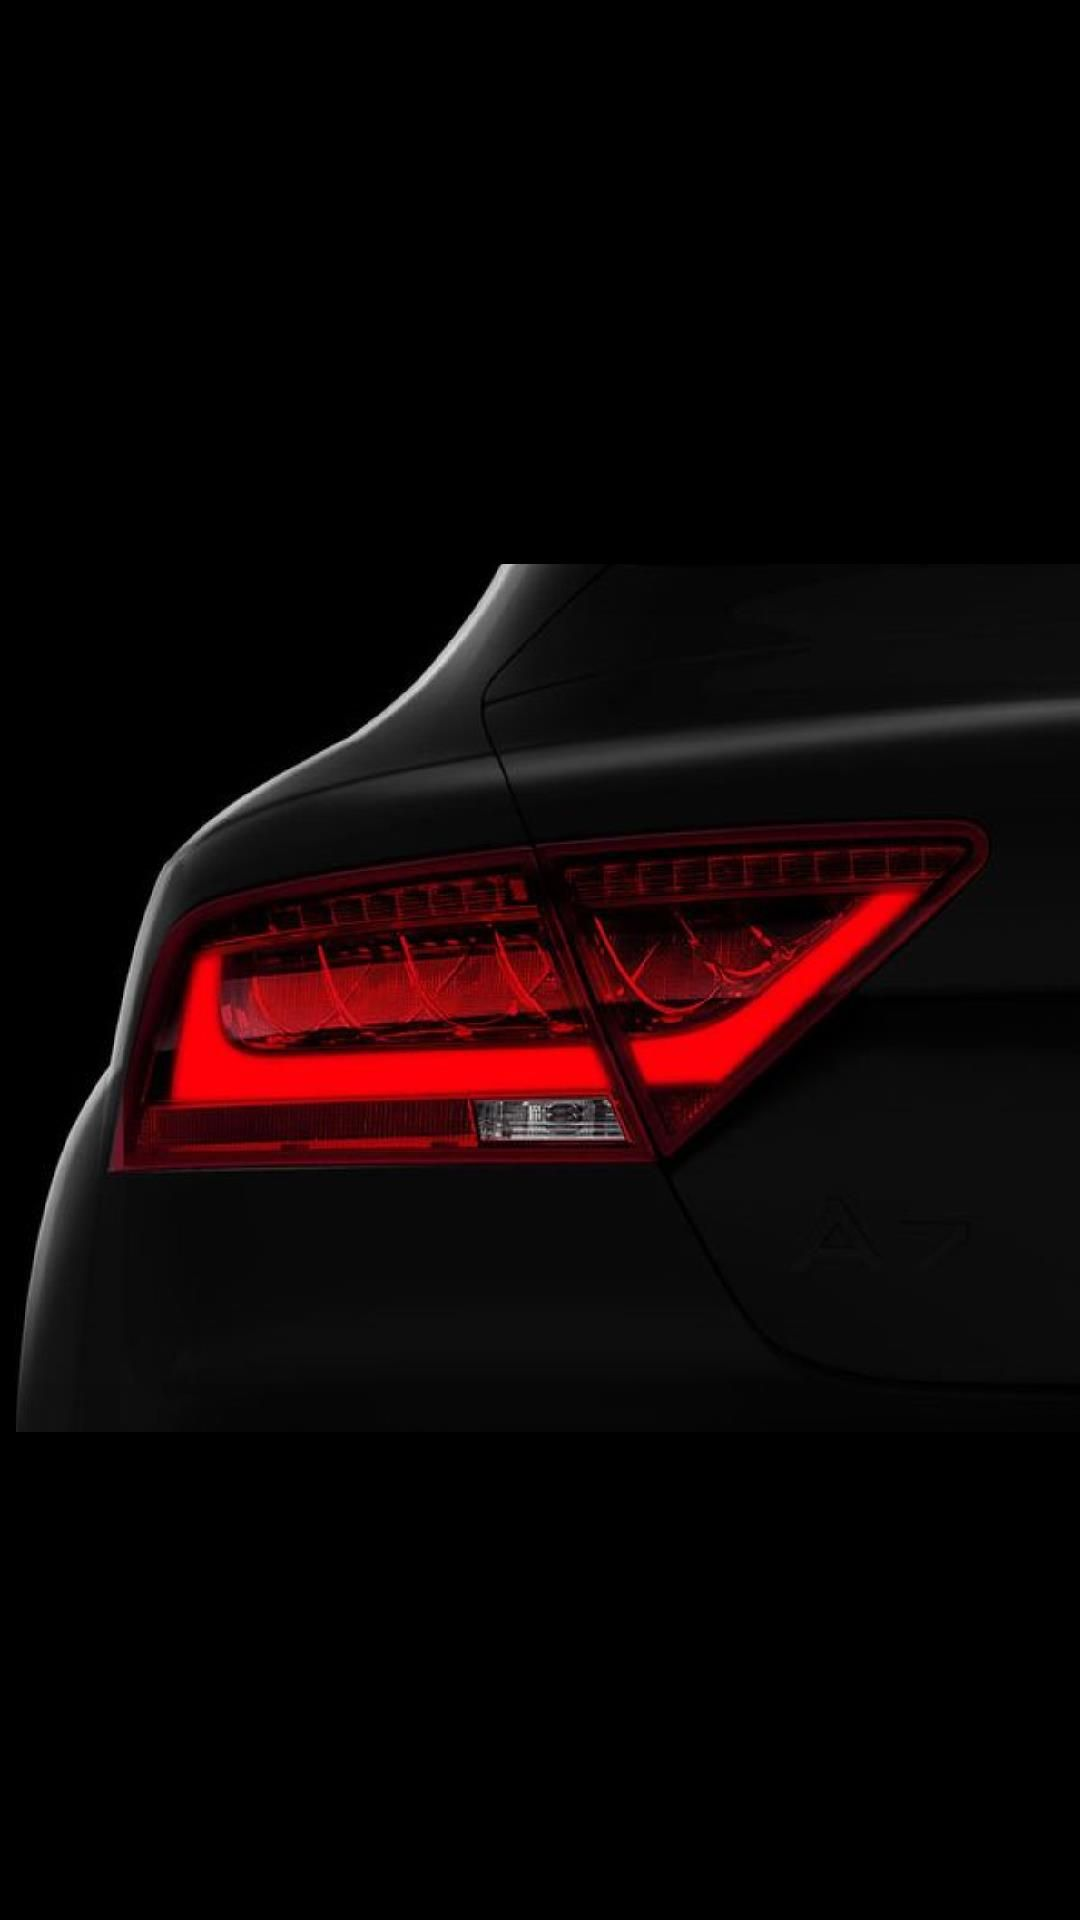 Pin By Aniki On Aventador Tail Light Audi A7 Audi